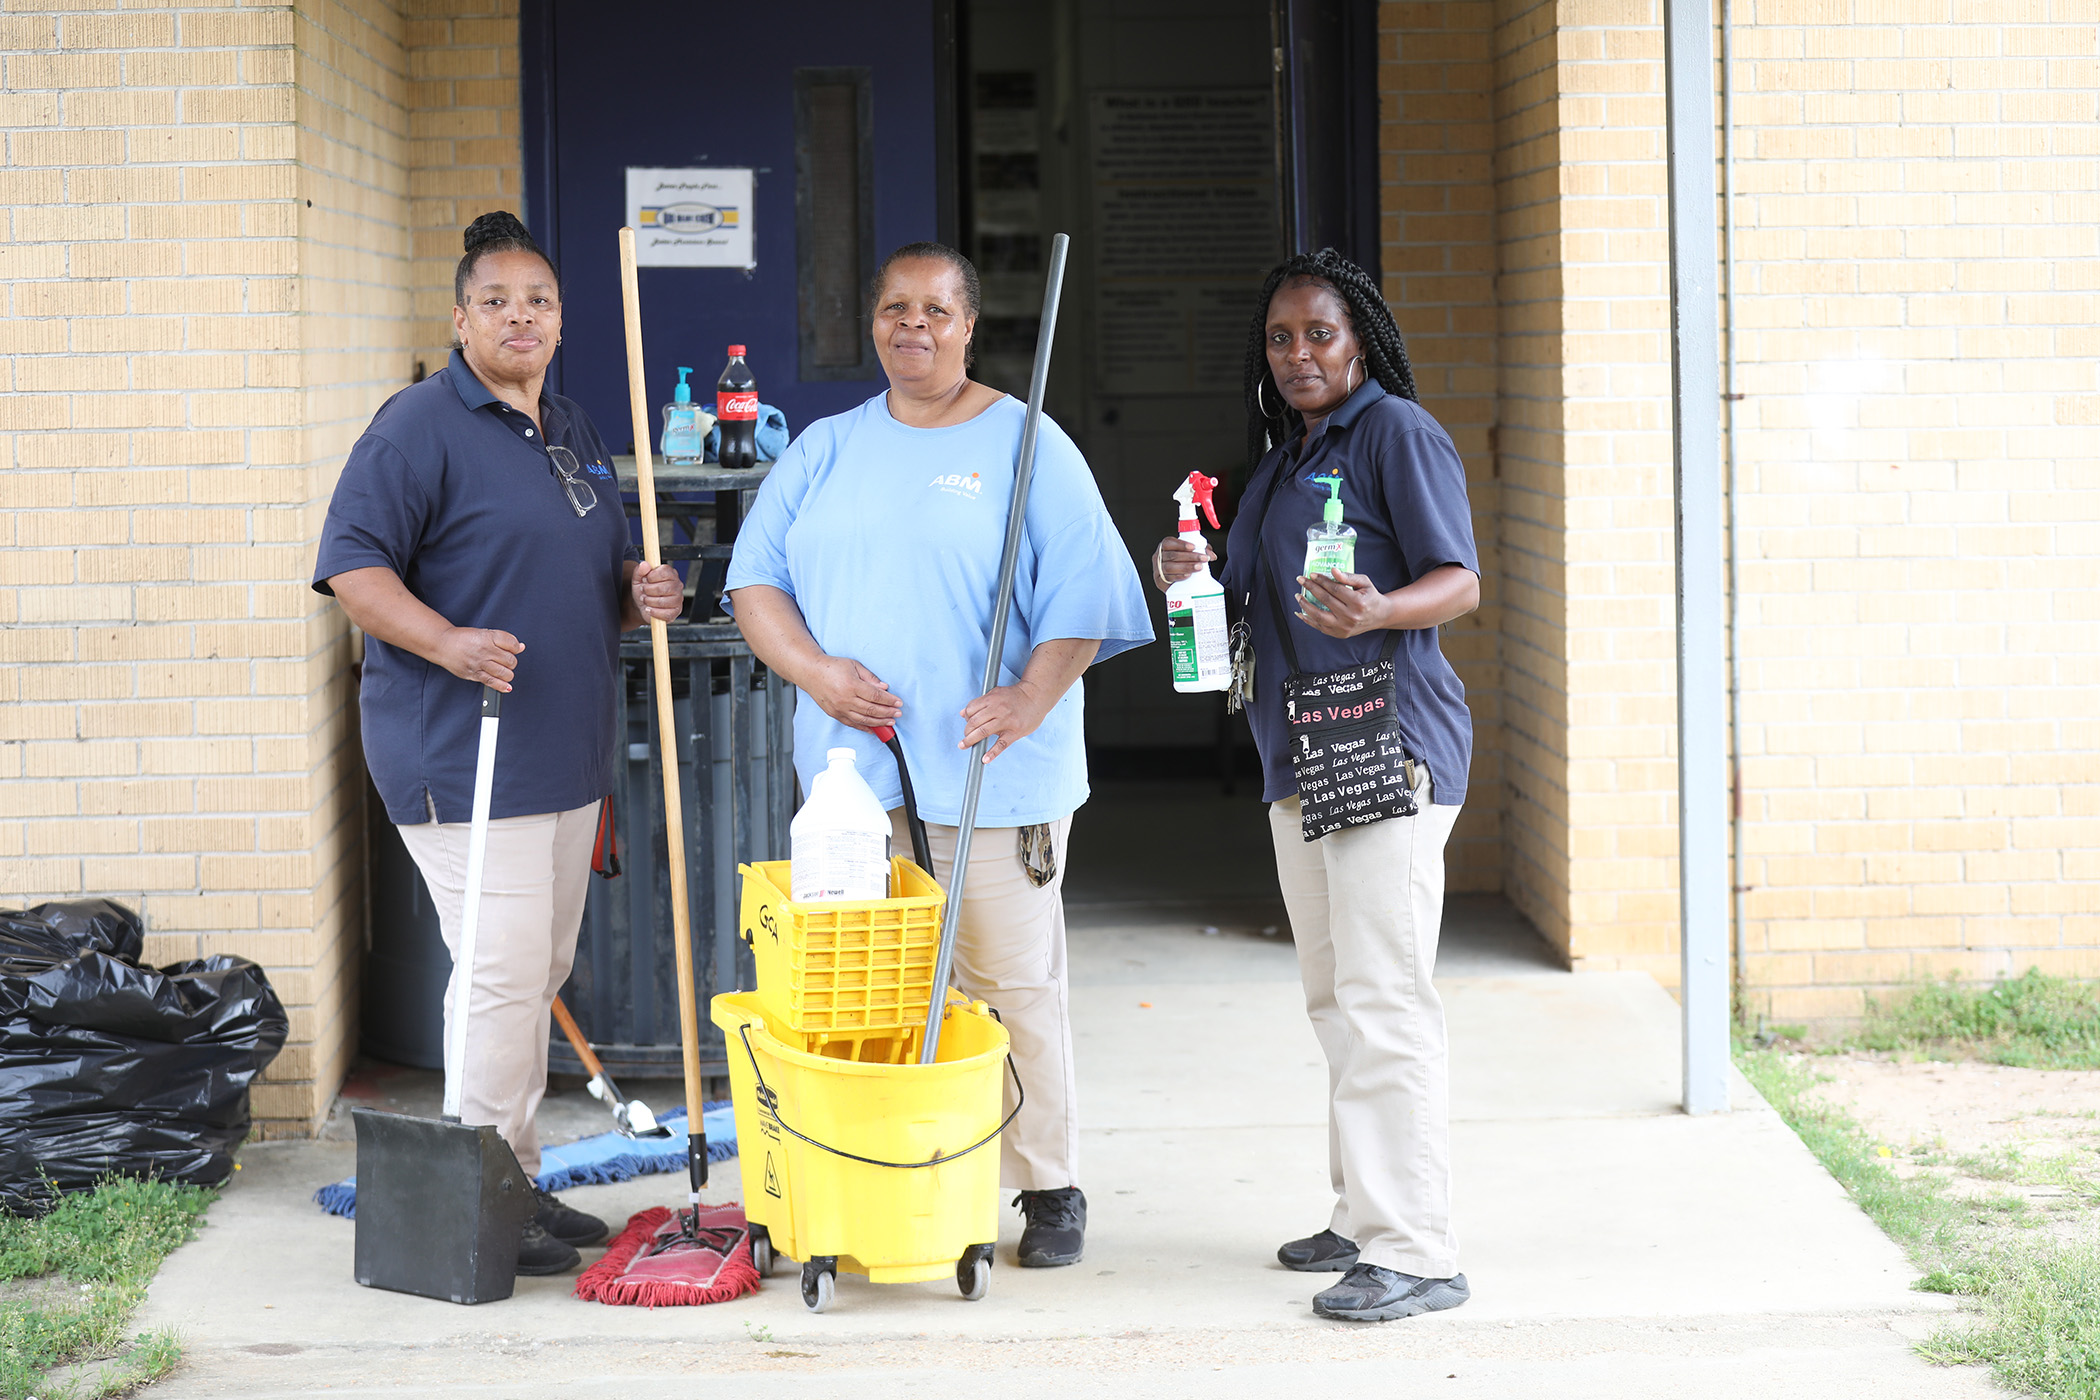 School custodians stop to pose for a photo.